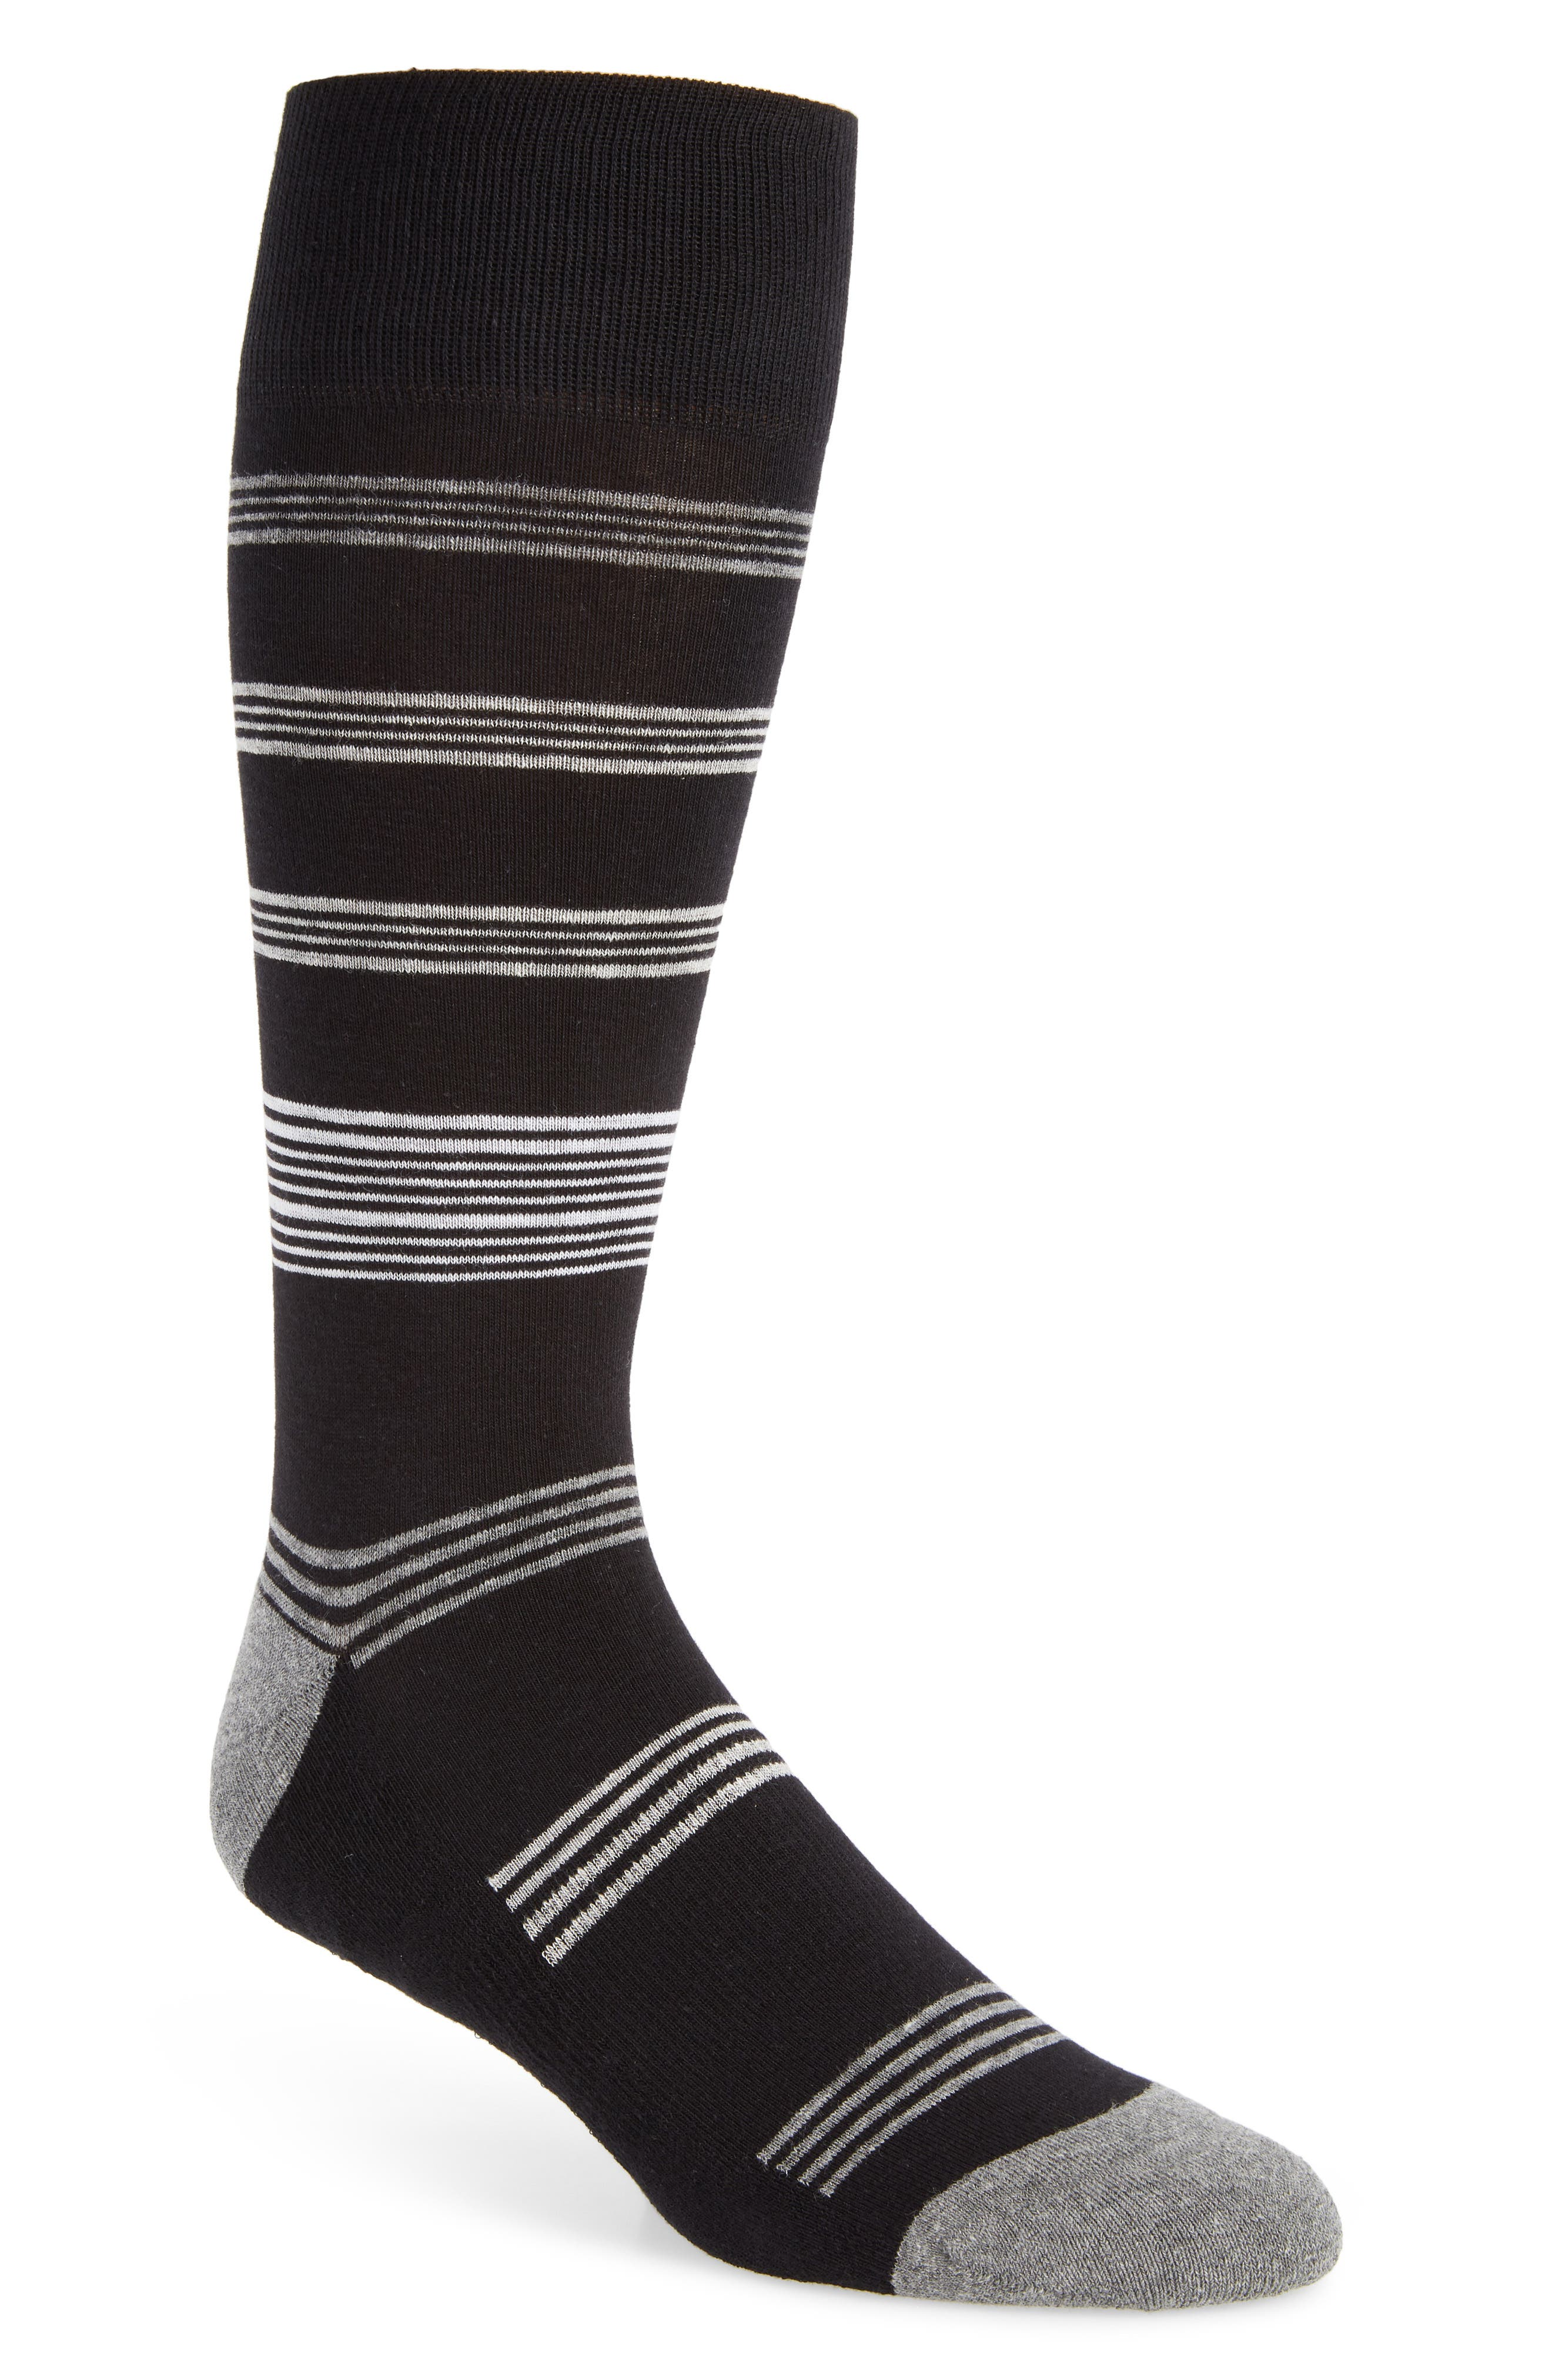 Stripe Socks,                             Main thumbnail 1, color,                             BLACK/ GREY